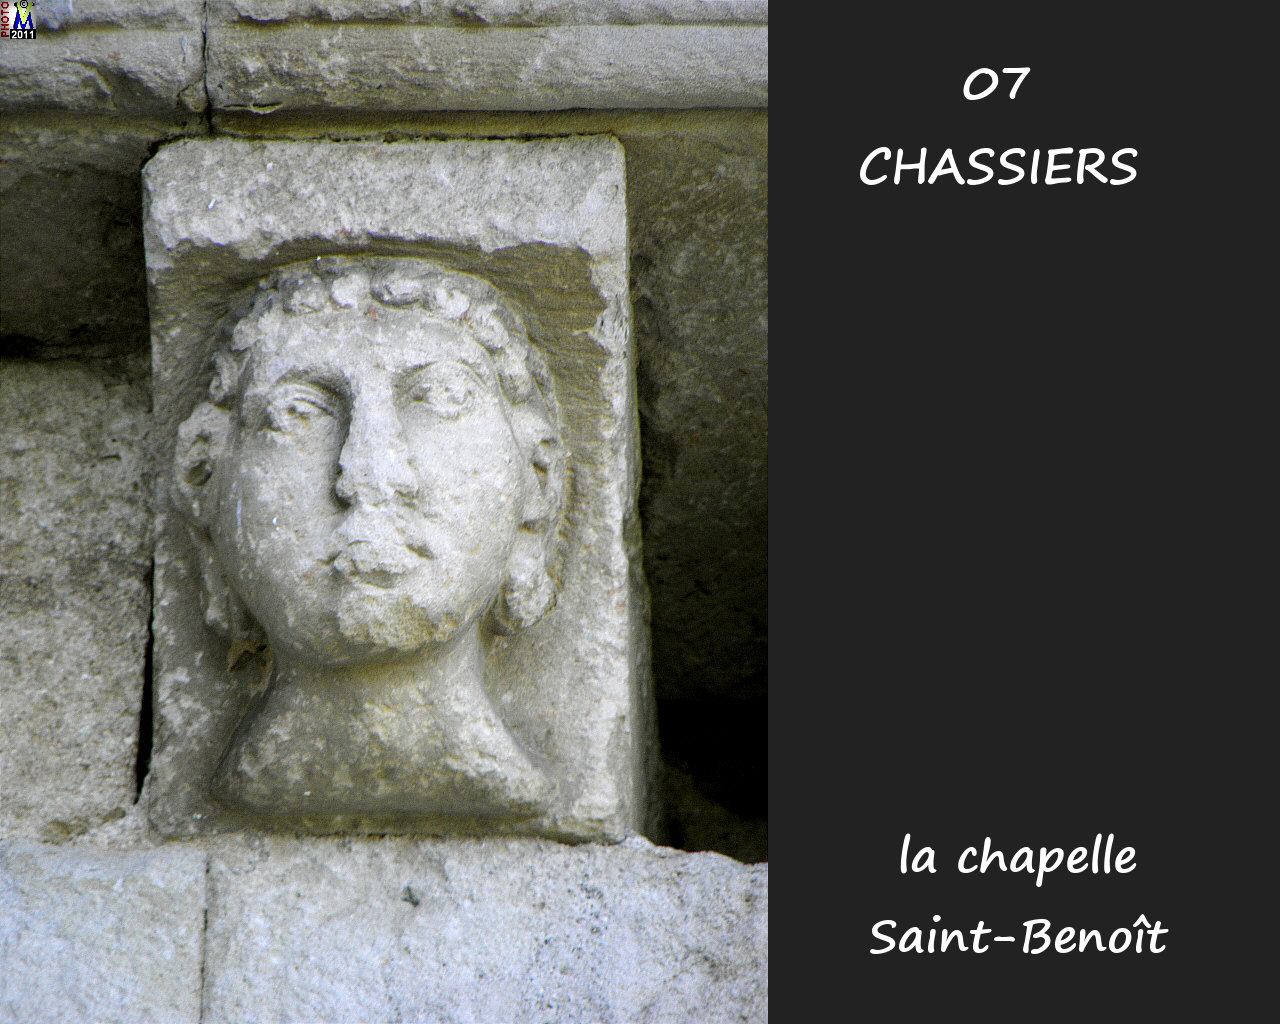 07CHASSIERS_chapelle_104.jpg